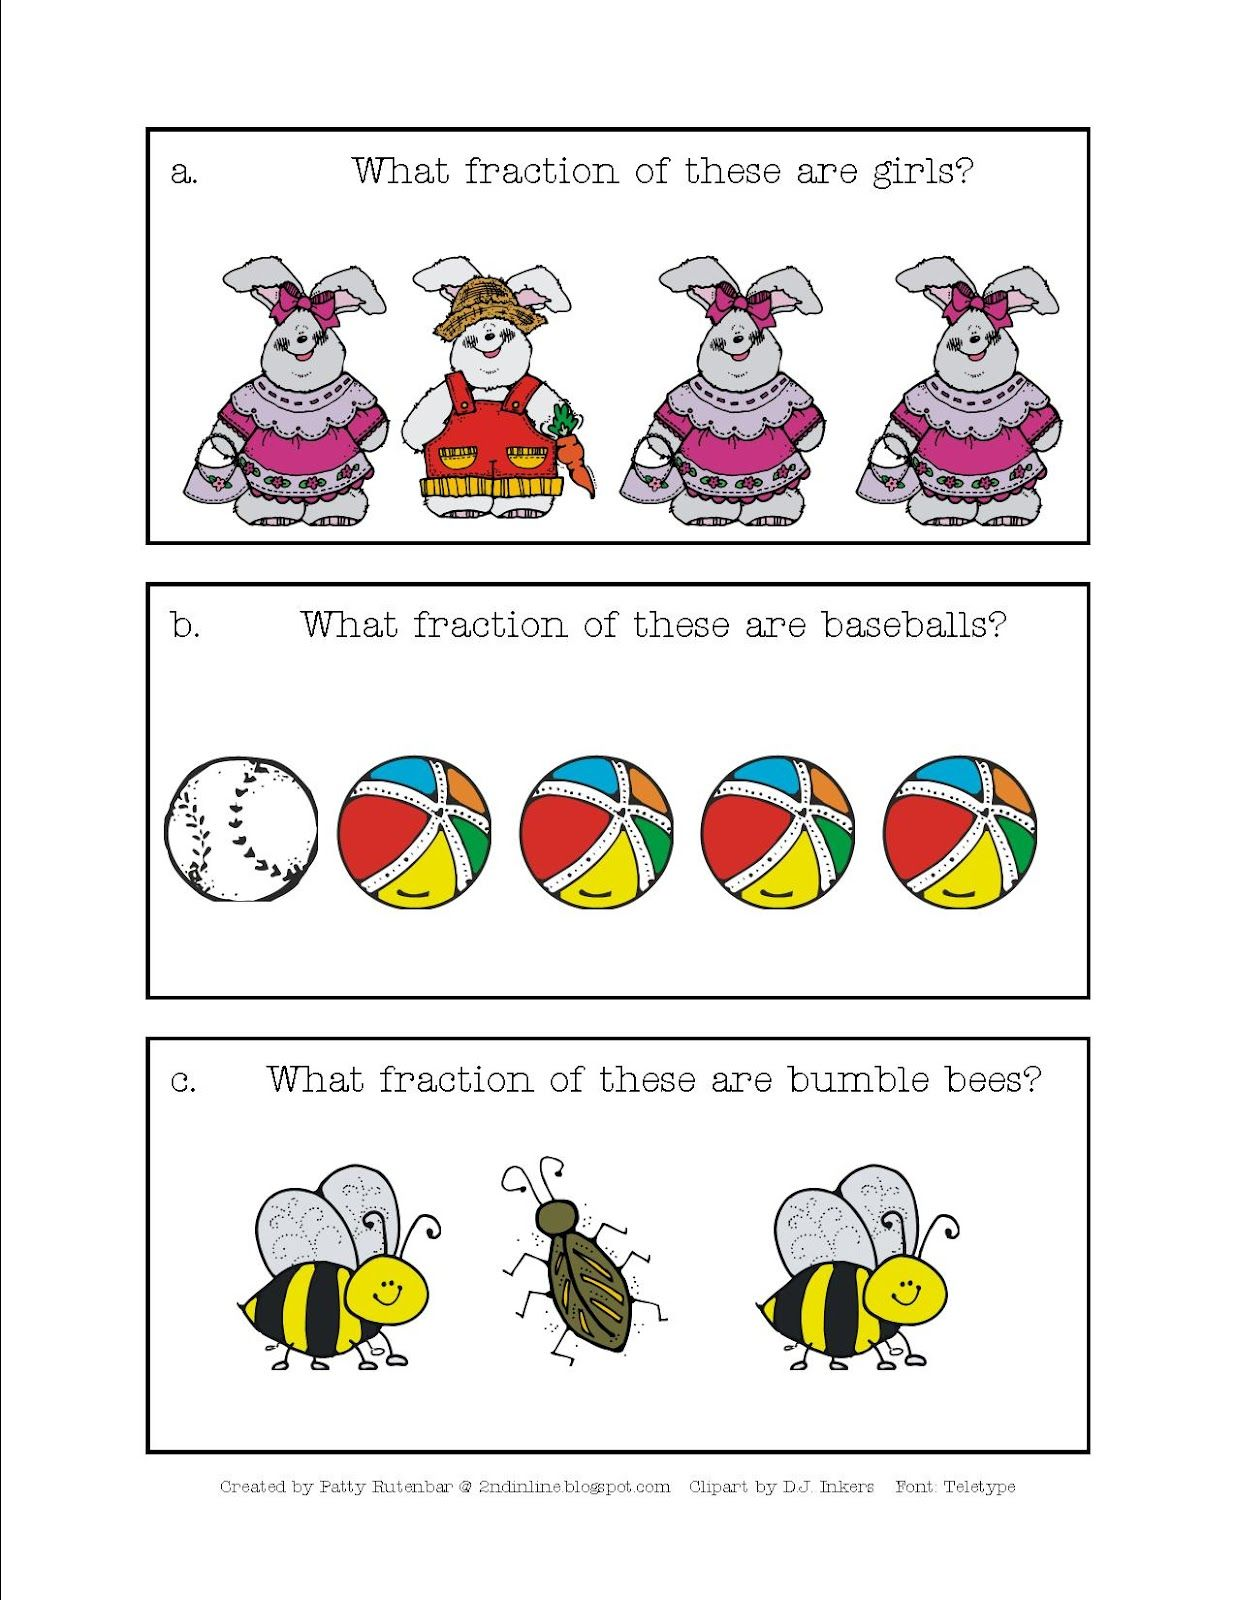 Here S A Set Of Cards For Working On Fractional Part Of A